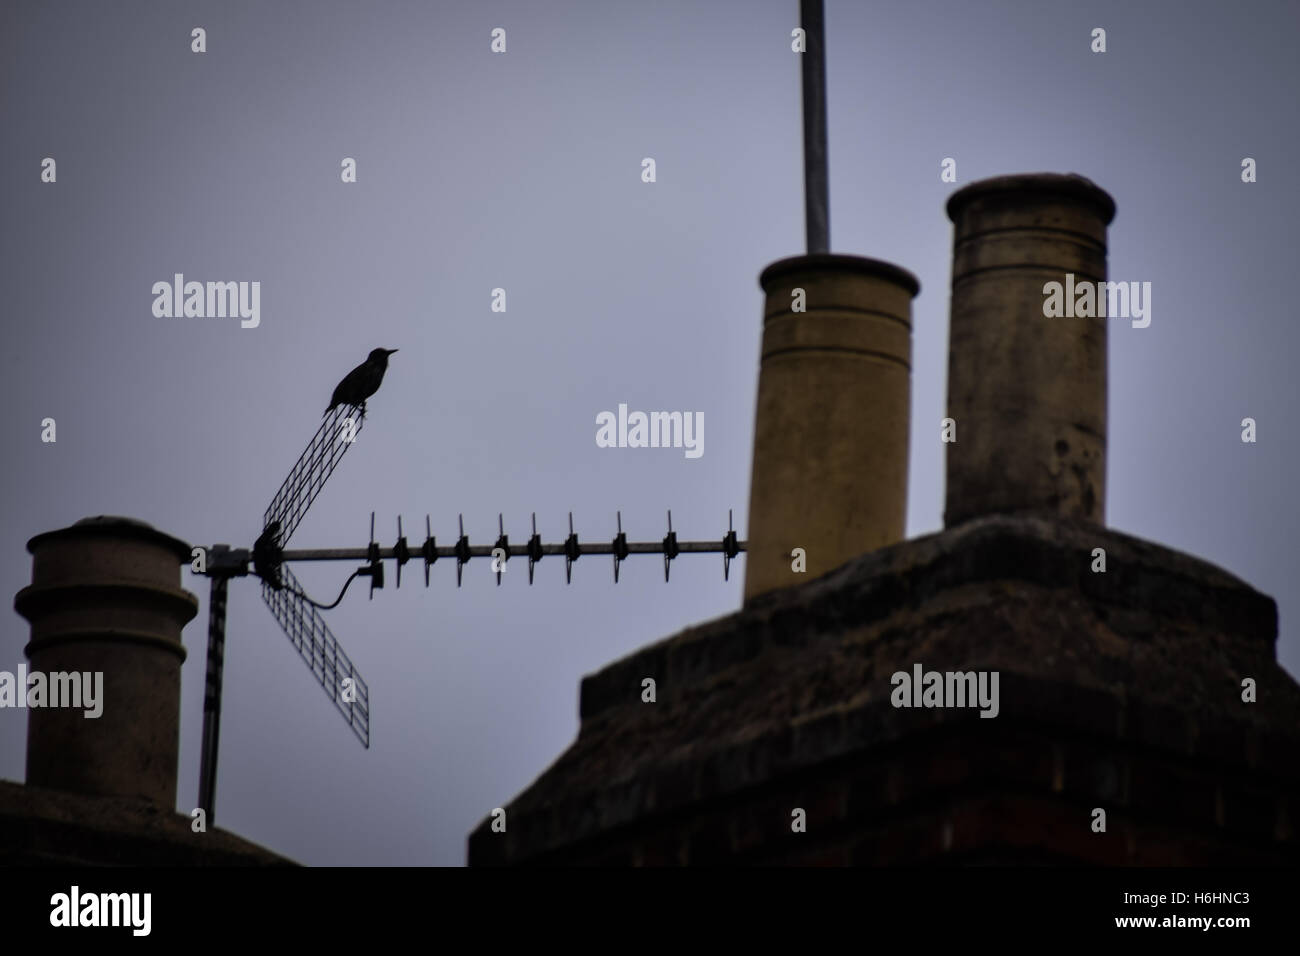 Urban scene, silhouette of starling on tv aerial with house chimney pots in the foreground - Stock Image